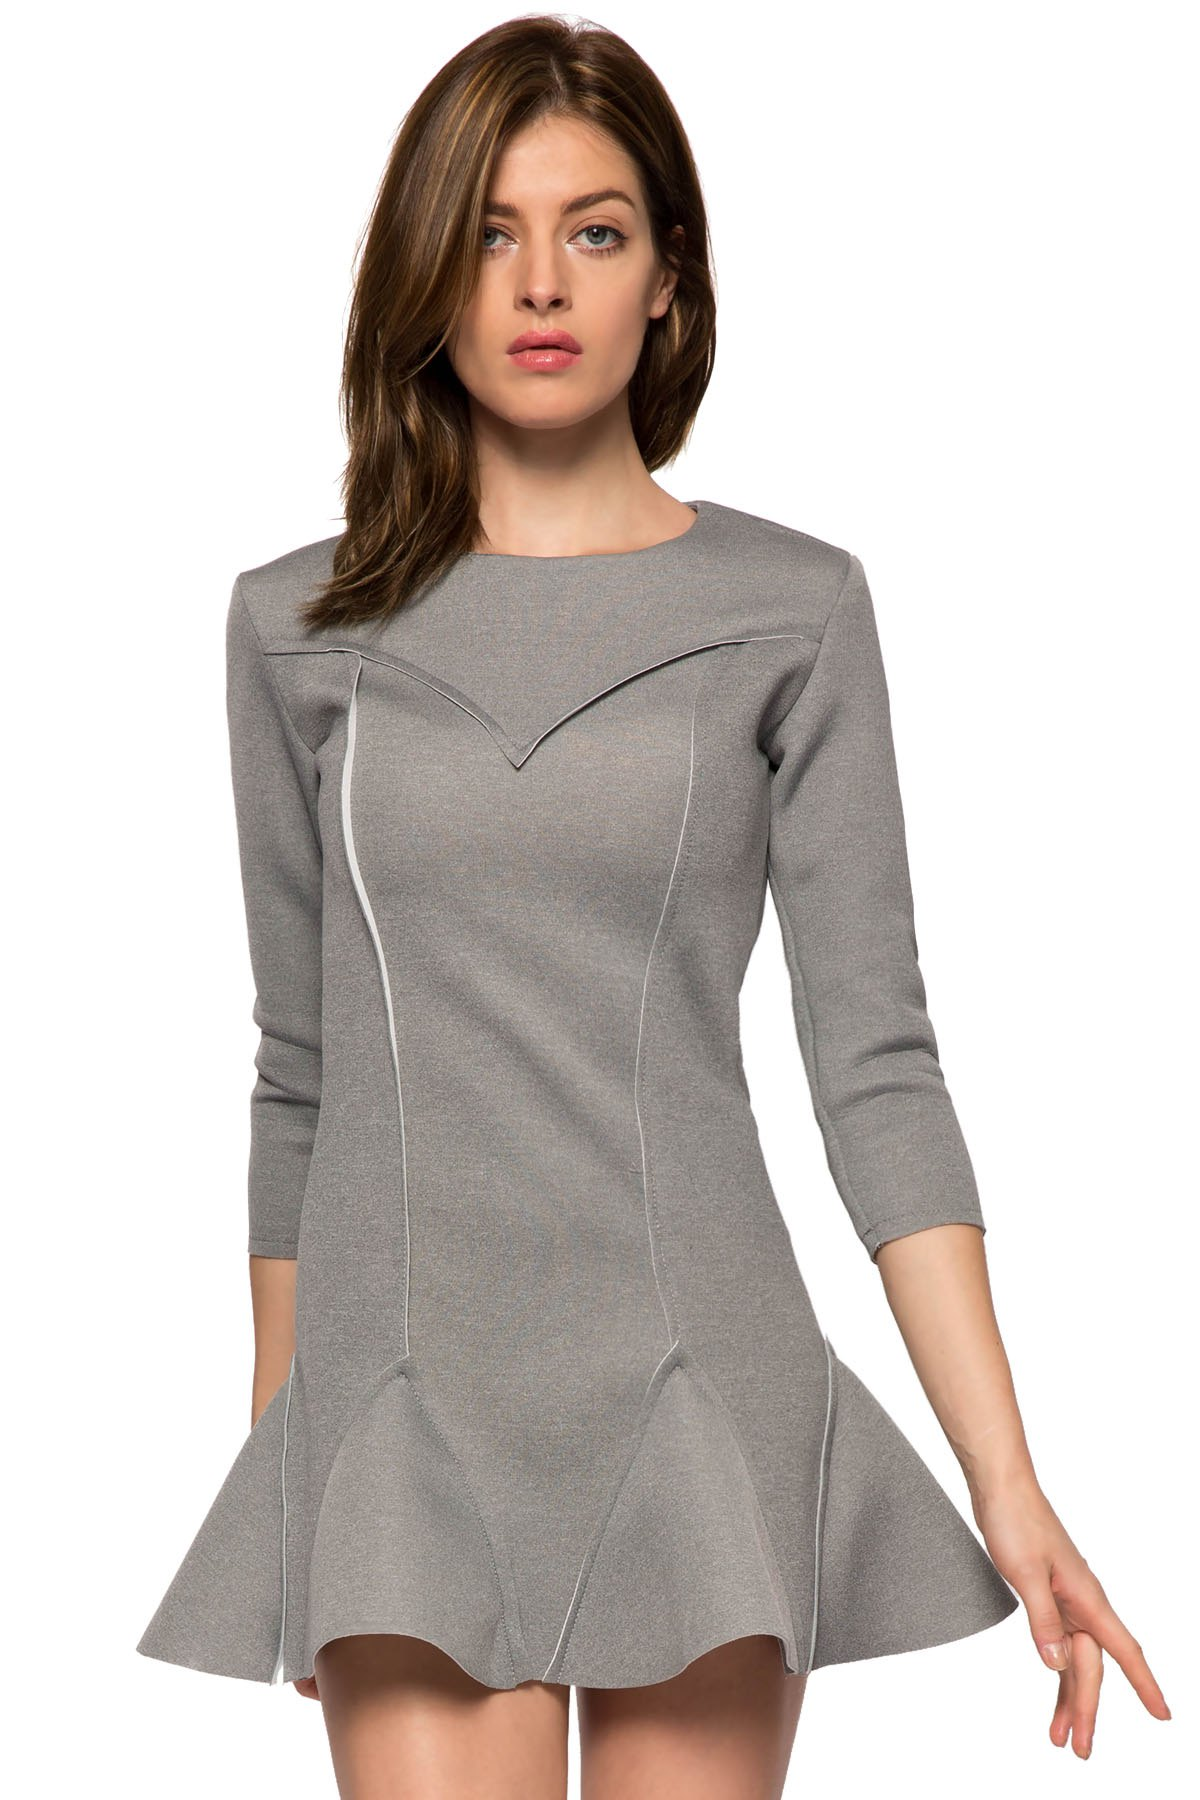 Solid Color 3/4 Sleeve Splicing Dress